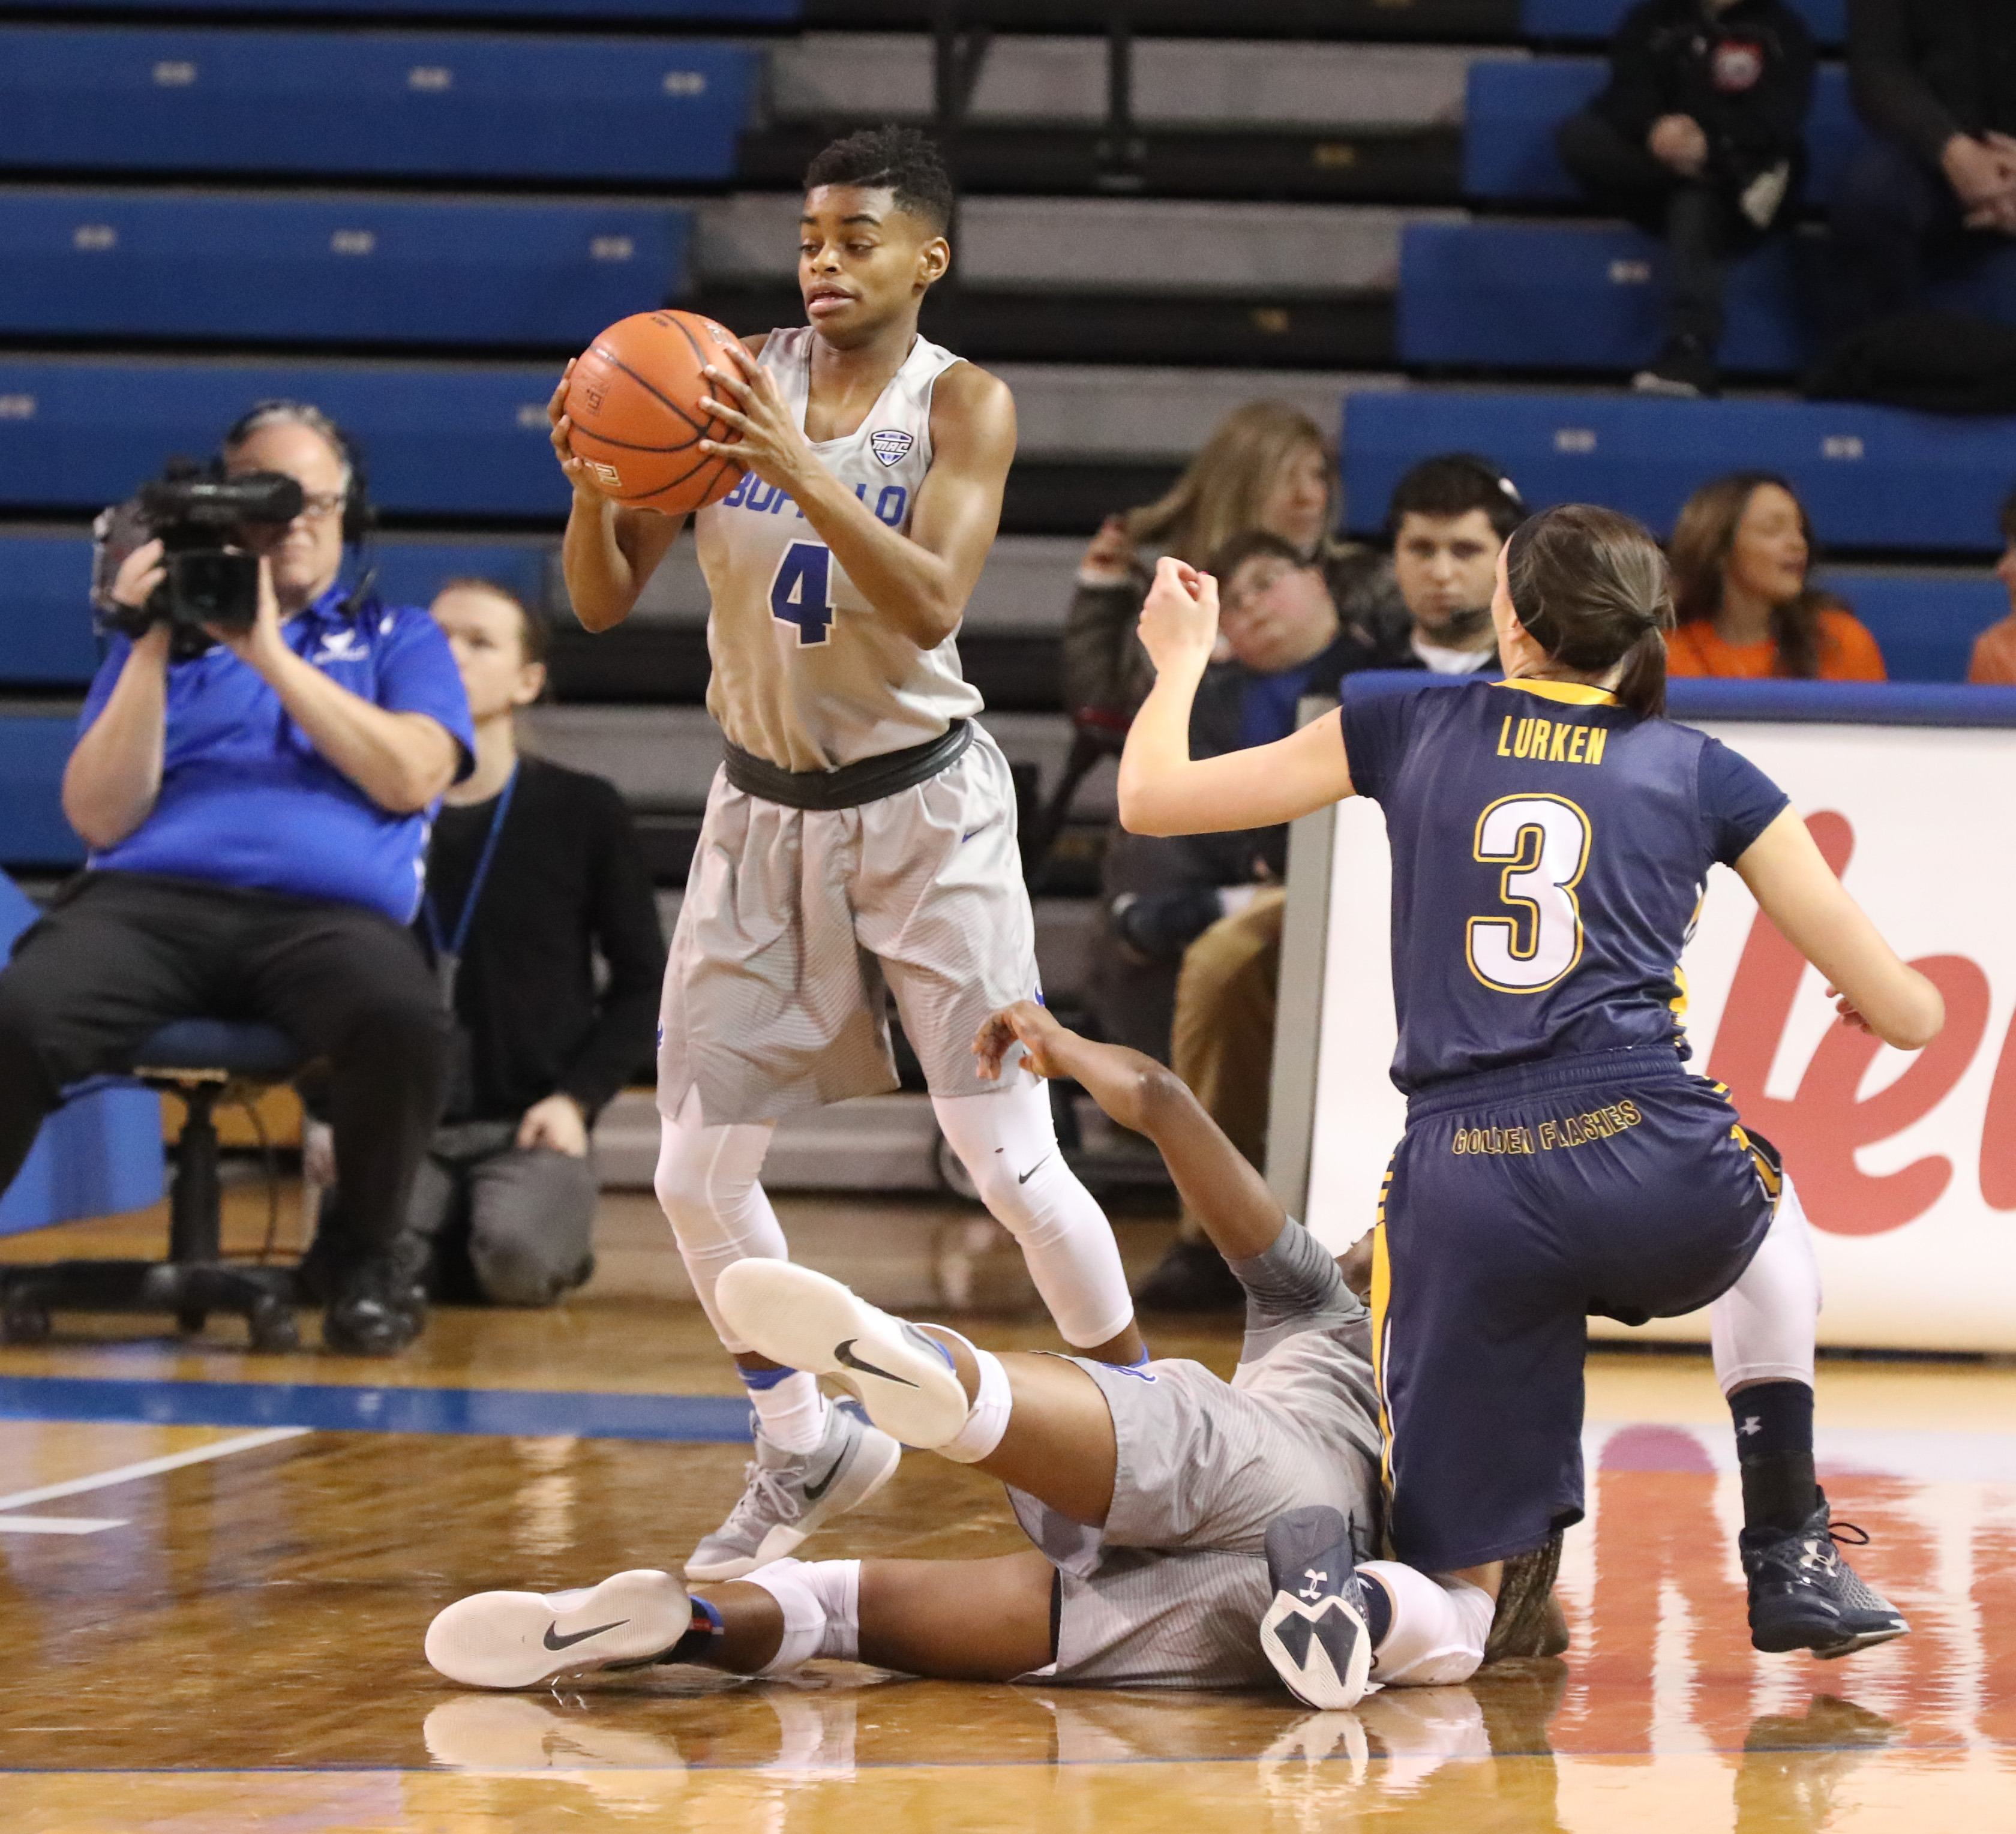 UB's JoAnna Smith had 31 points, equaling her career high, in Saturday's win over Kent State. (James P. McCoy/Buffalo News)